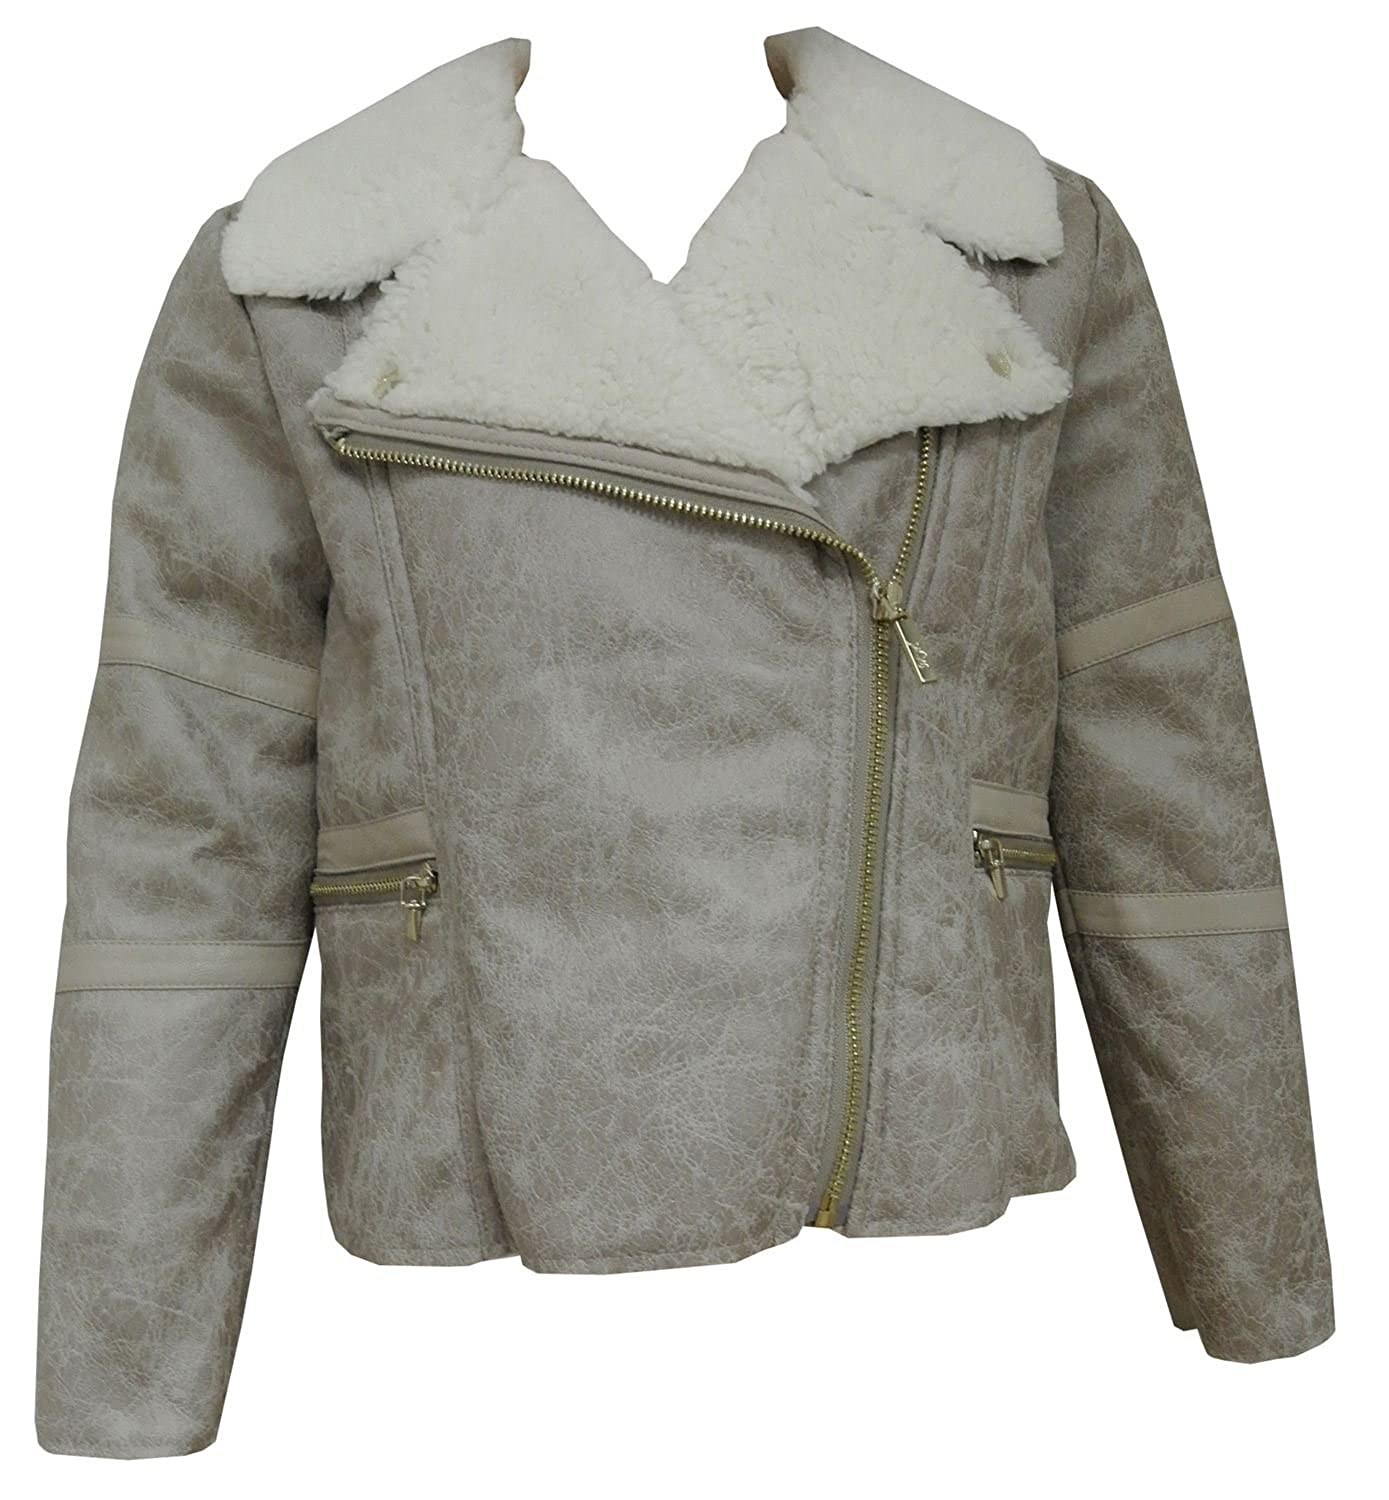 d8dc5671c mayoral - Teens girl faux leather jacket with fur, beige - 7466 ...